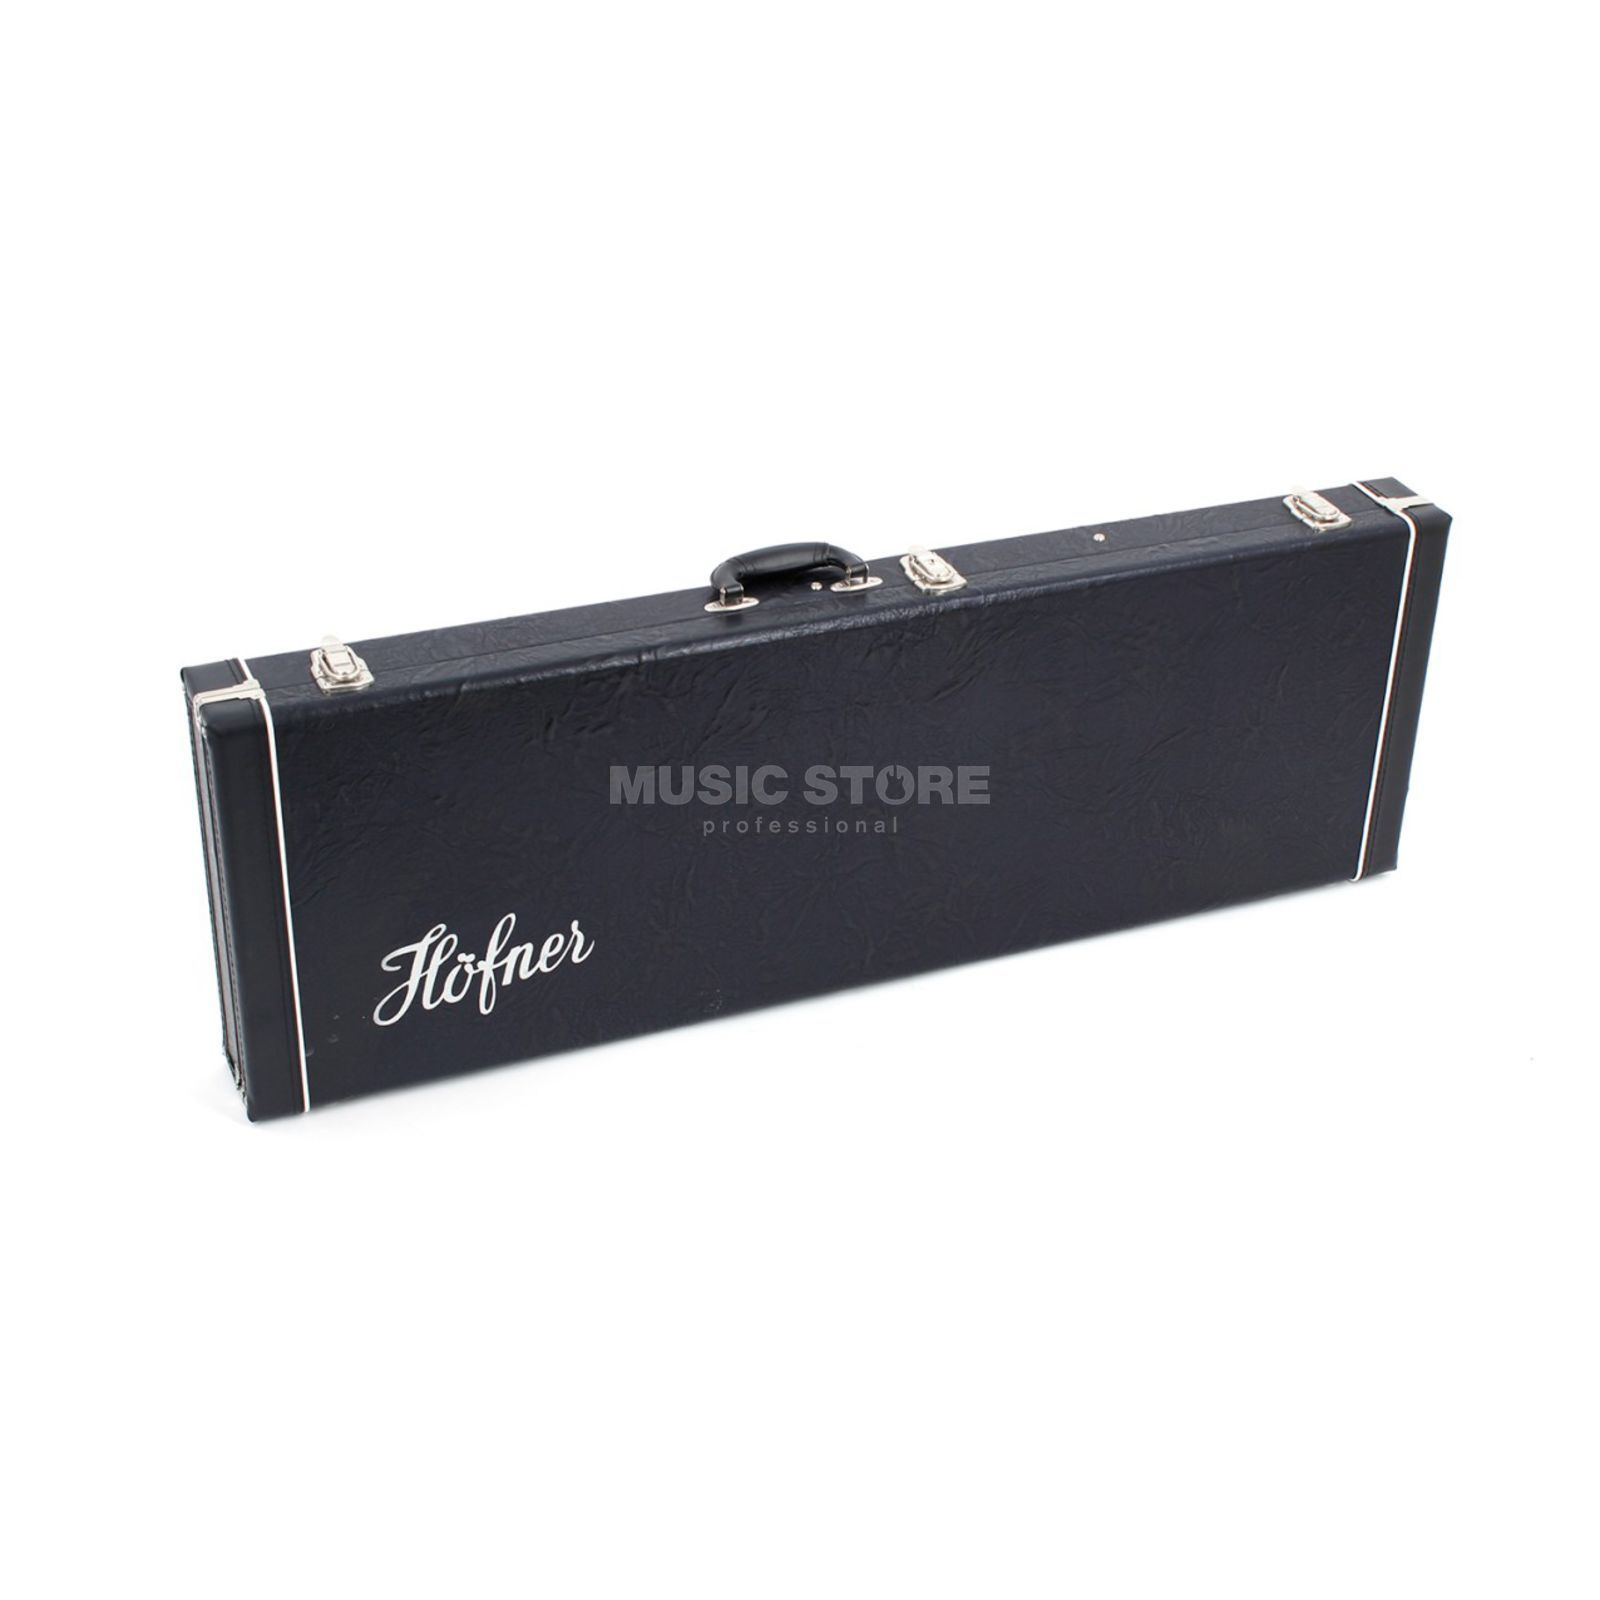 Höfner H64/S Guitar Case Solid Body & Verythin Deluxe Product Image